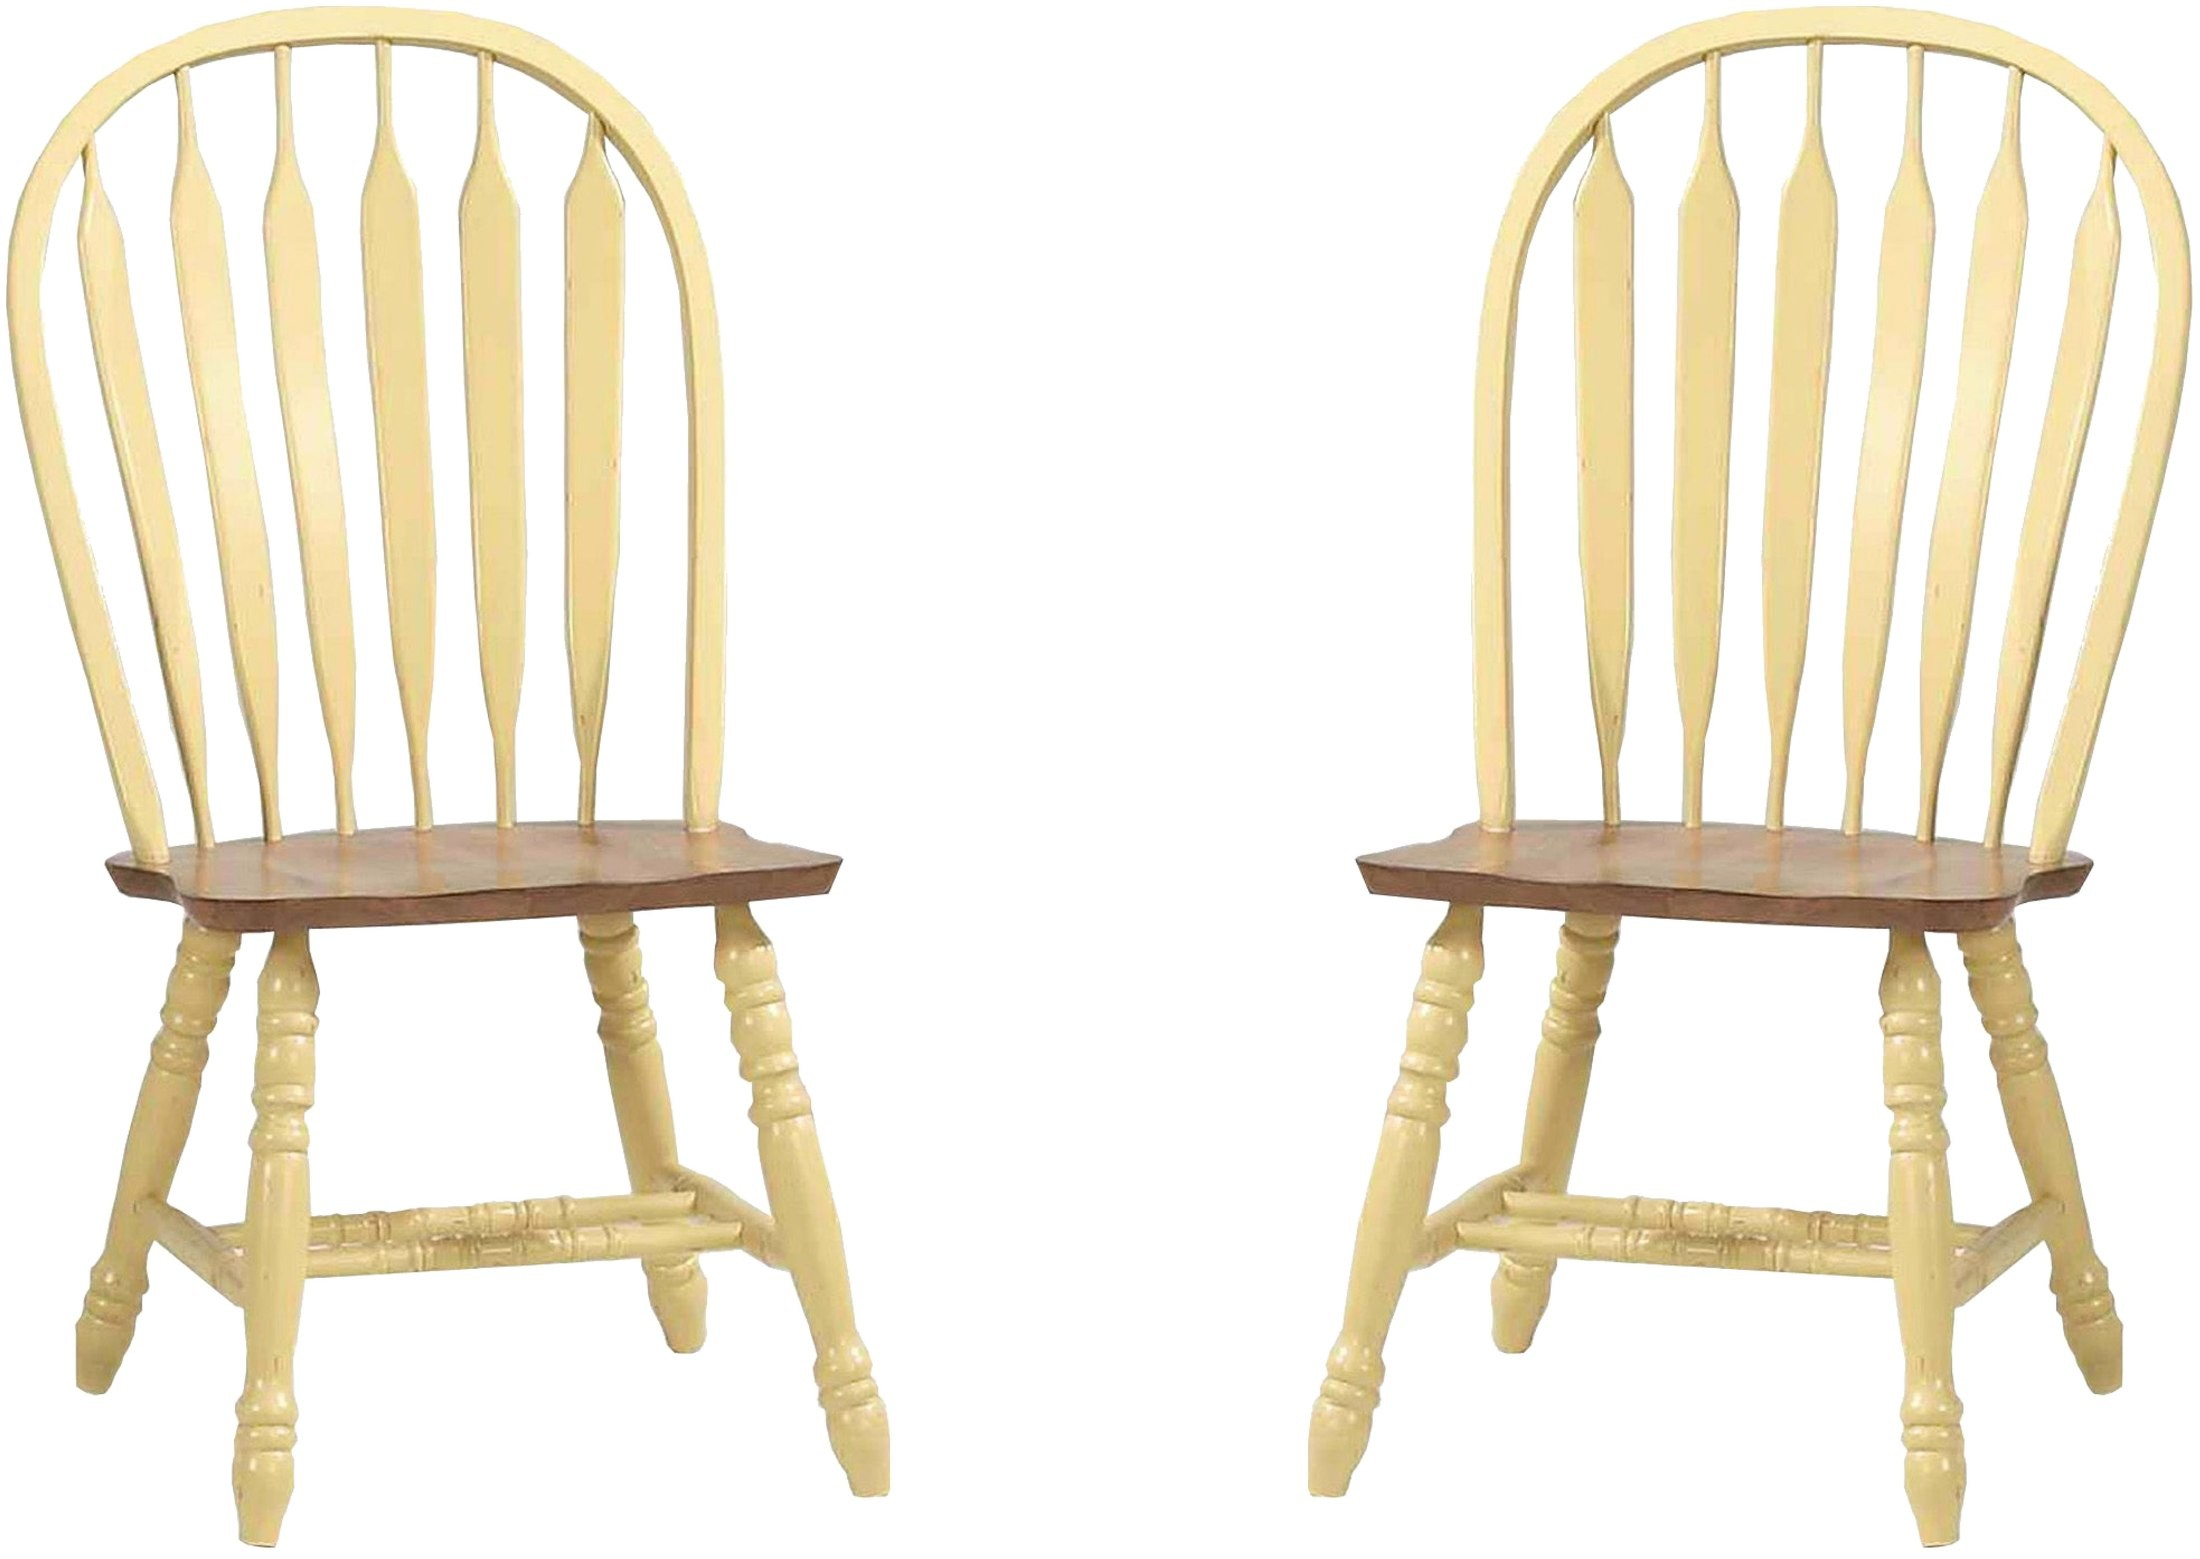 Yellow Side Chair Yellow Rustic Oak Bowback Side Chair Set Of 2 From Eci